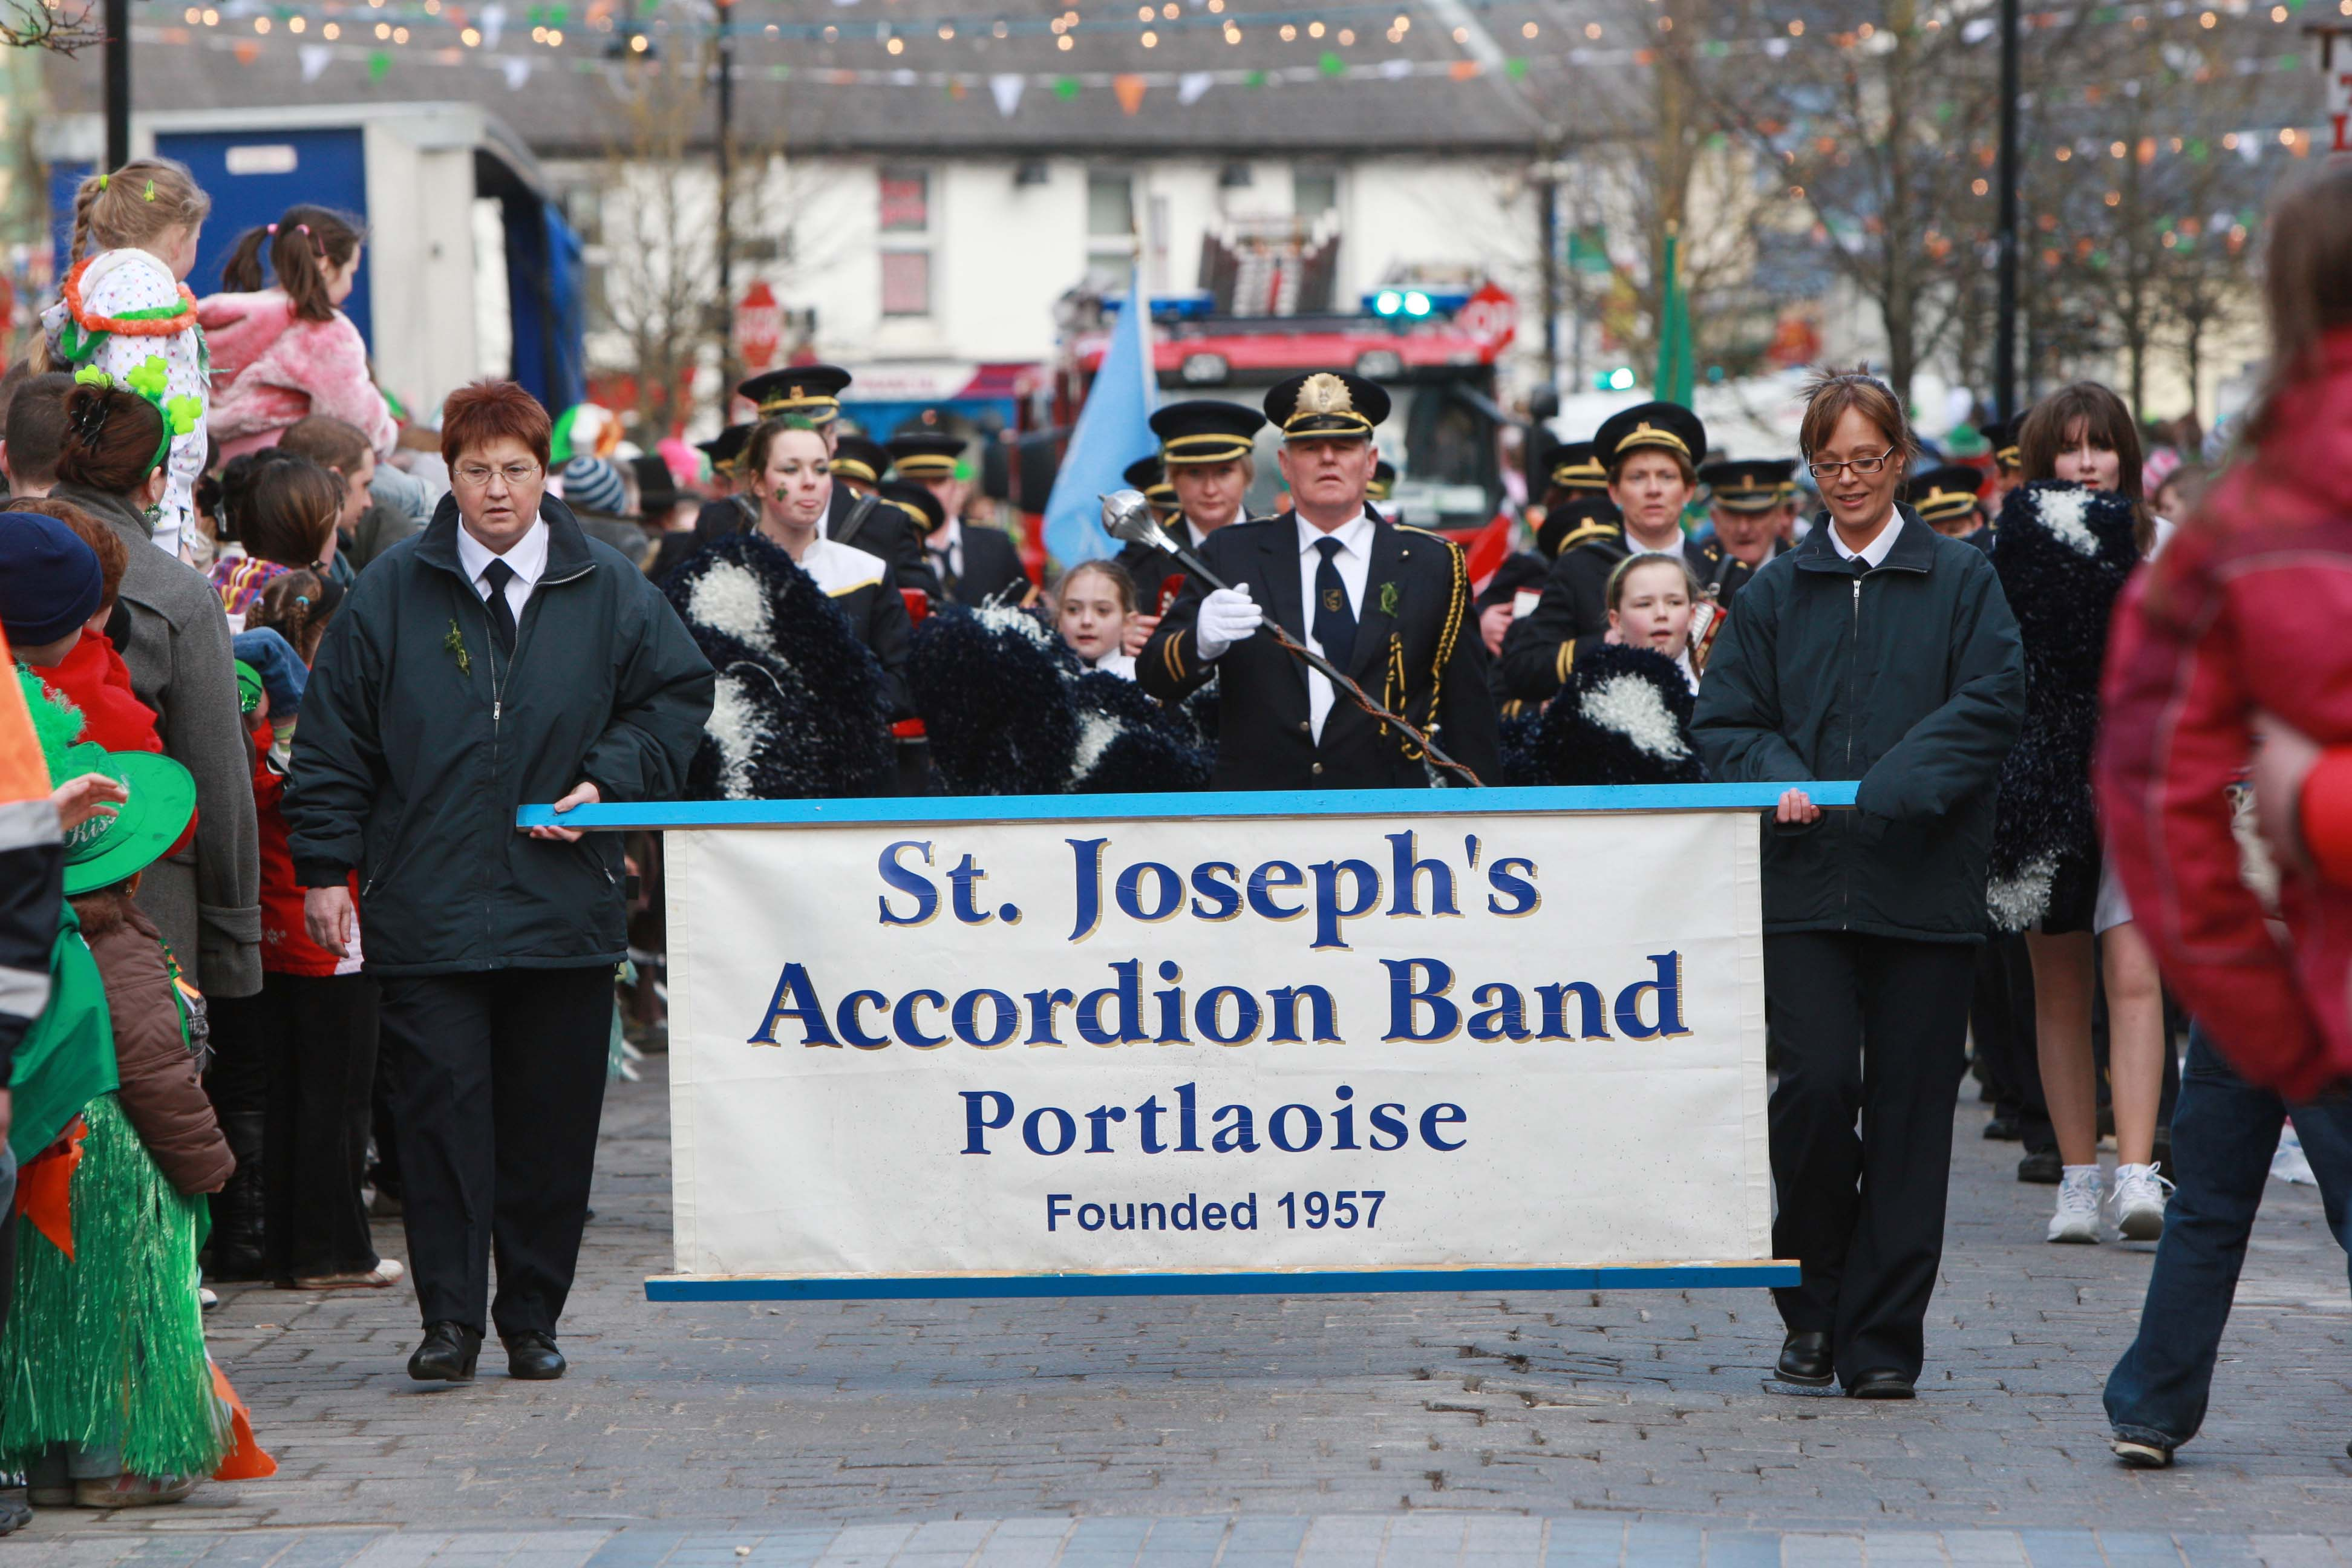 Moment in time great colour and atmosphere from portlaoise st st josephs accordian band portlaoise at the portlaoise st patricks day parade picture alf harvey malvernweather Gallery